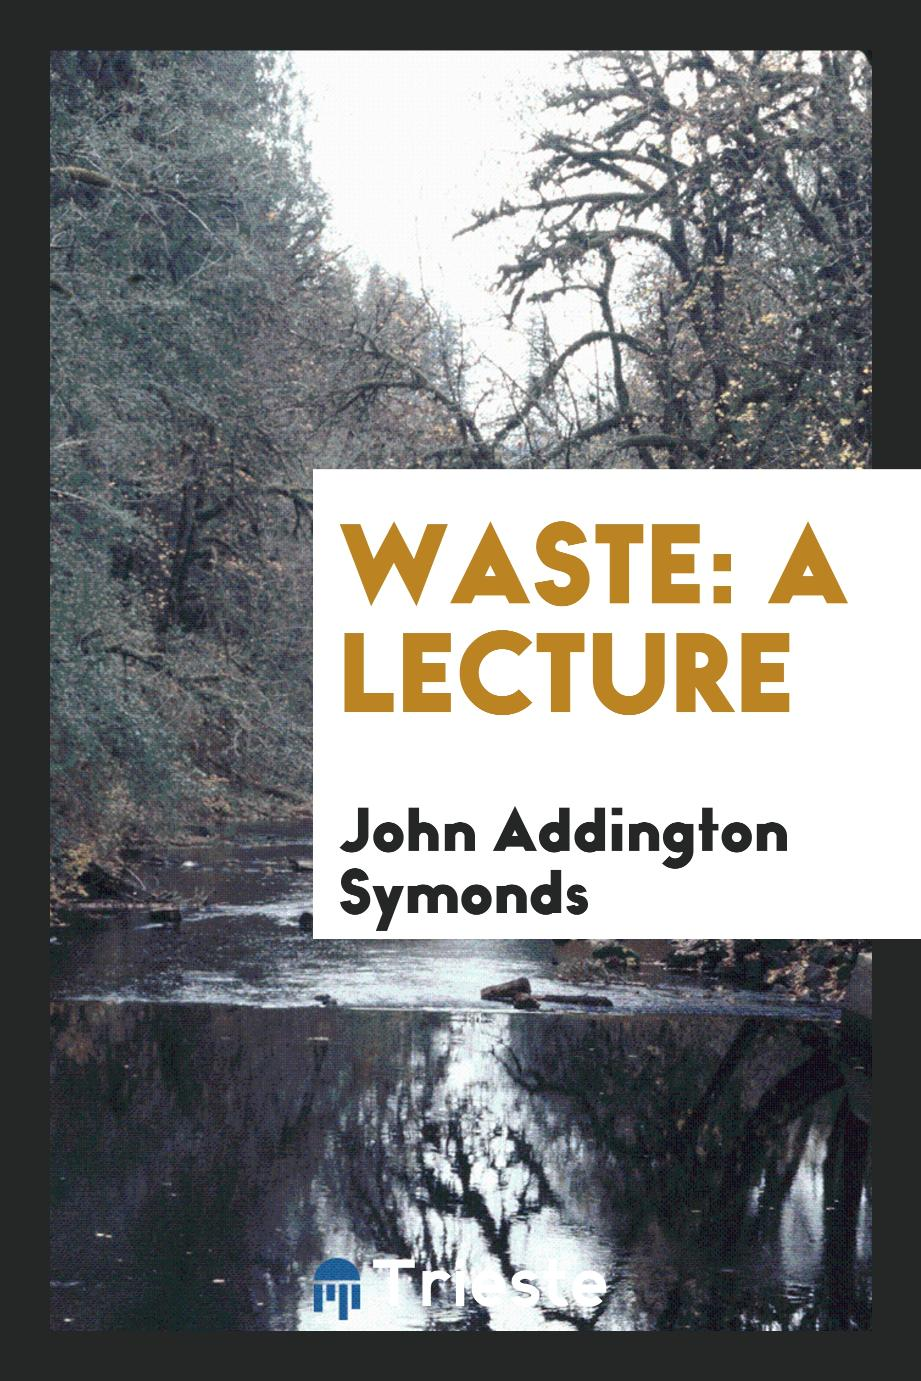 Waste: A Lecture